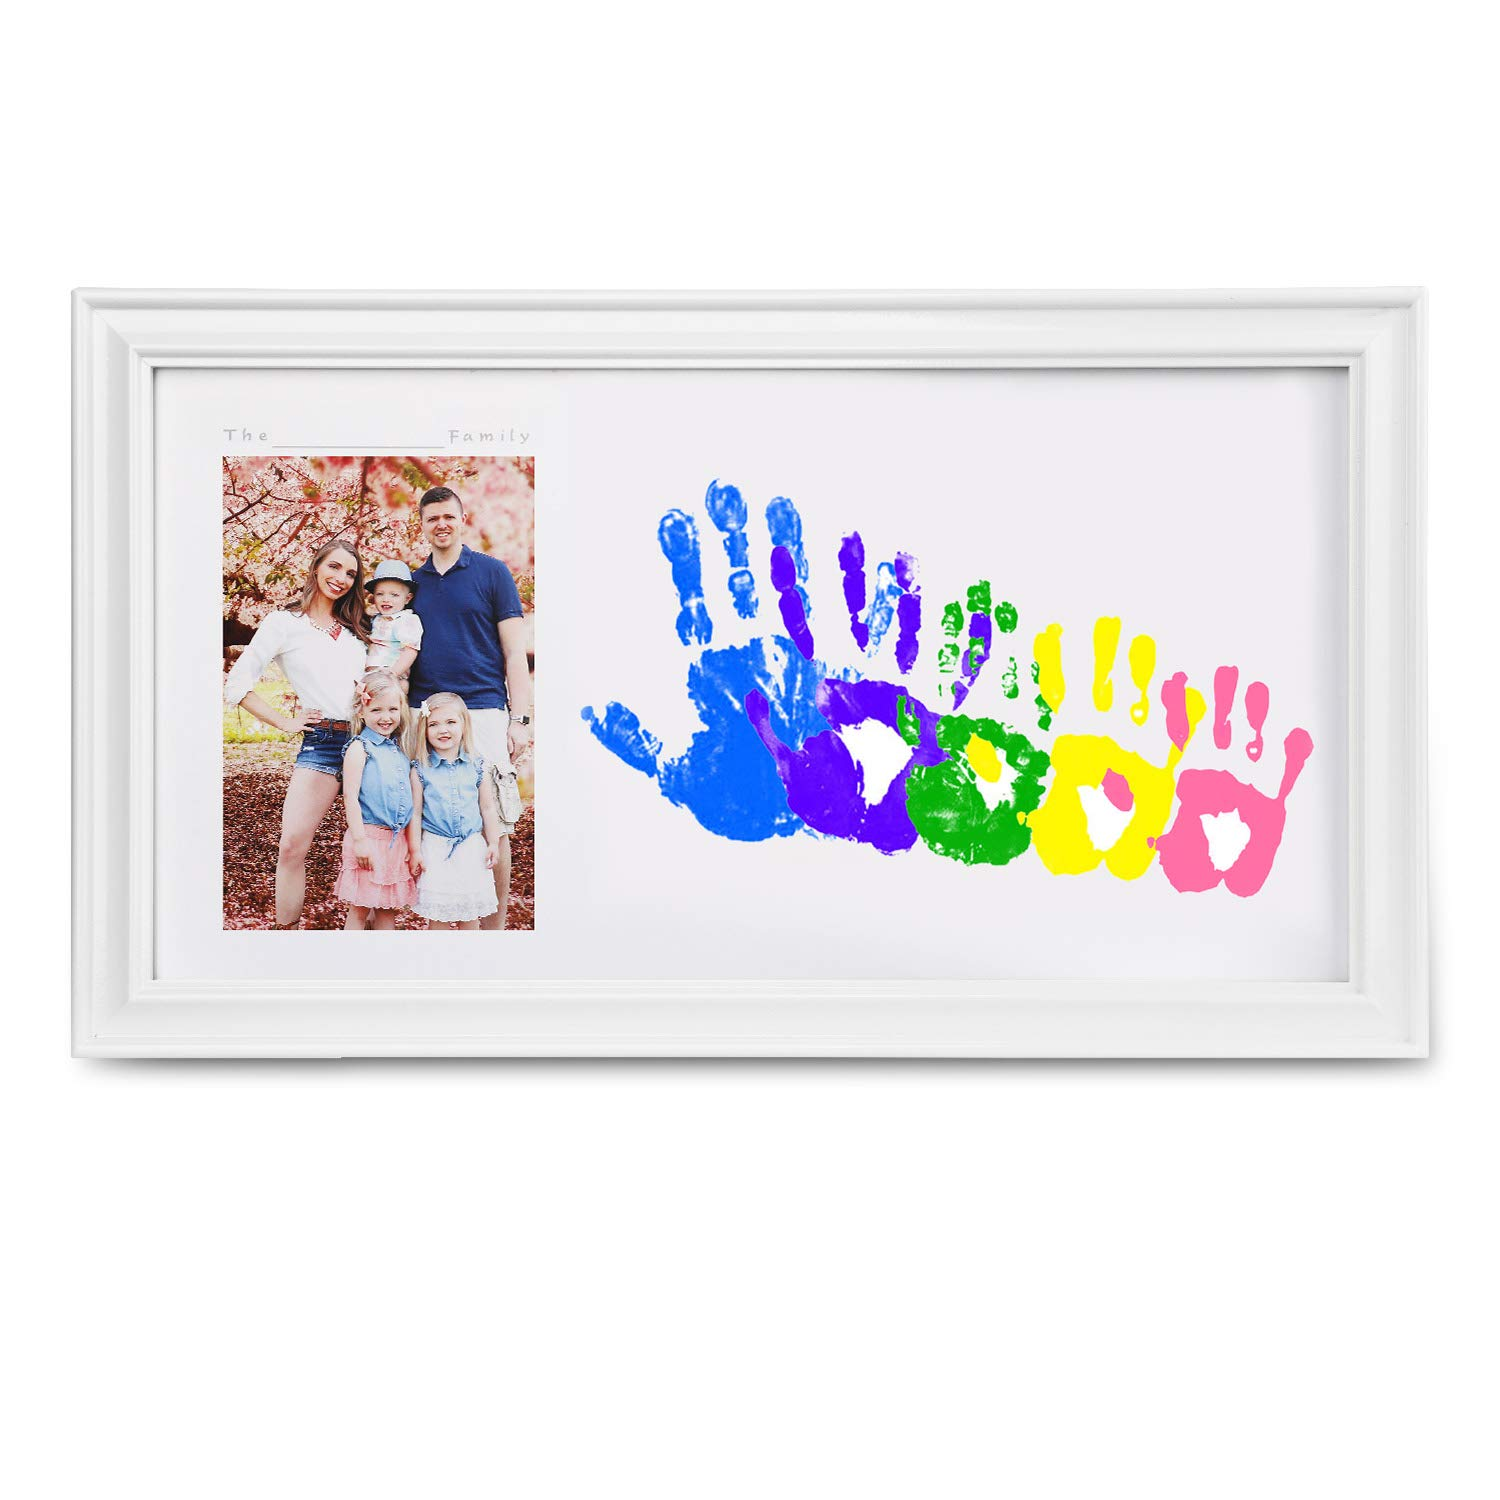 Customizable Newborn and Baby Handprint Footprint Keepsake with Large Size Family Photo Frame Kit - Personalize w/Your Family Name! Non-Toxic Paint. (Girl Newborn)